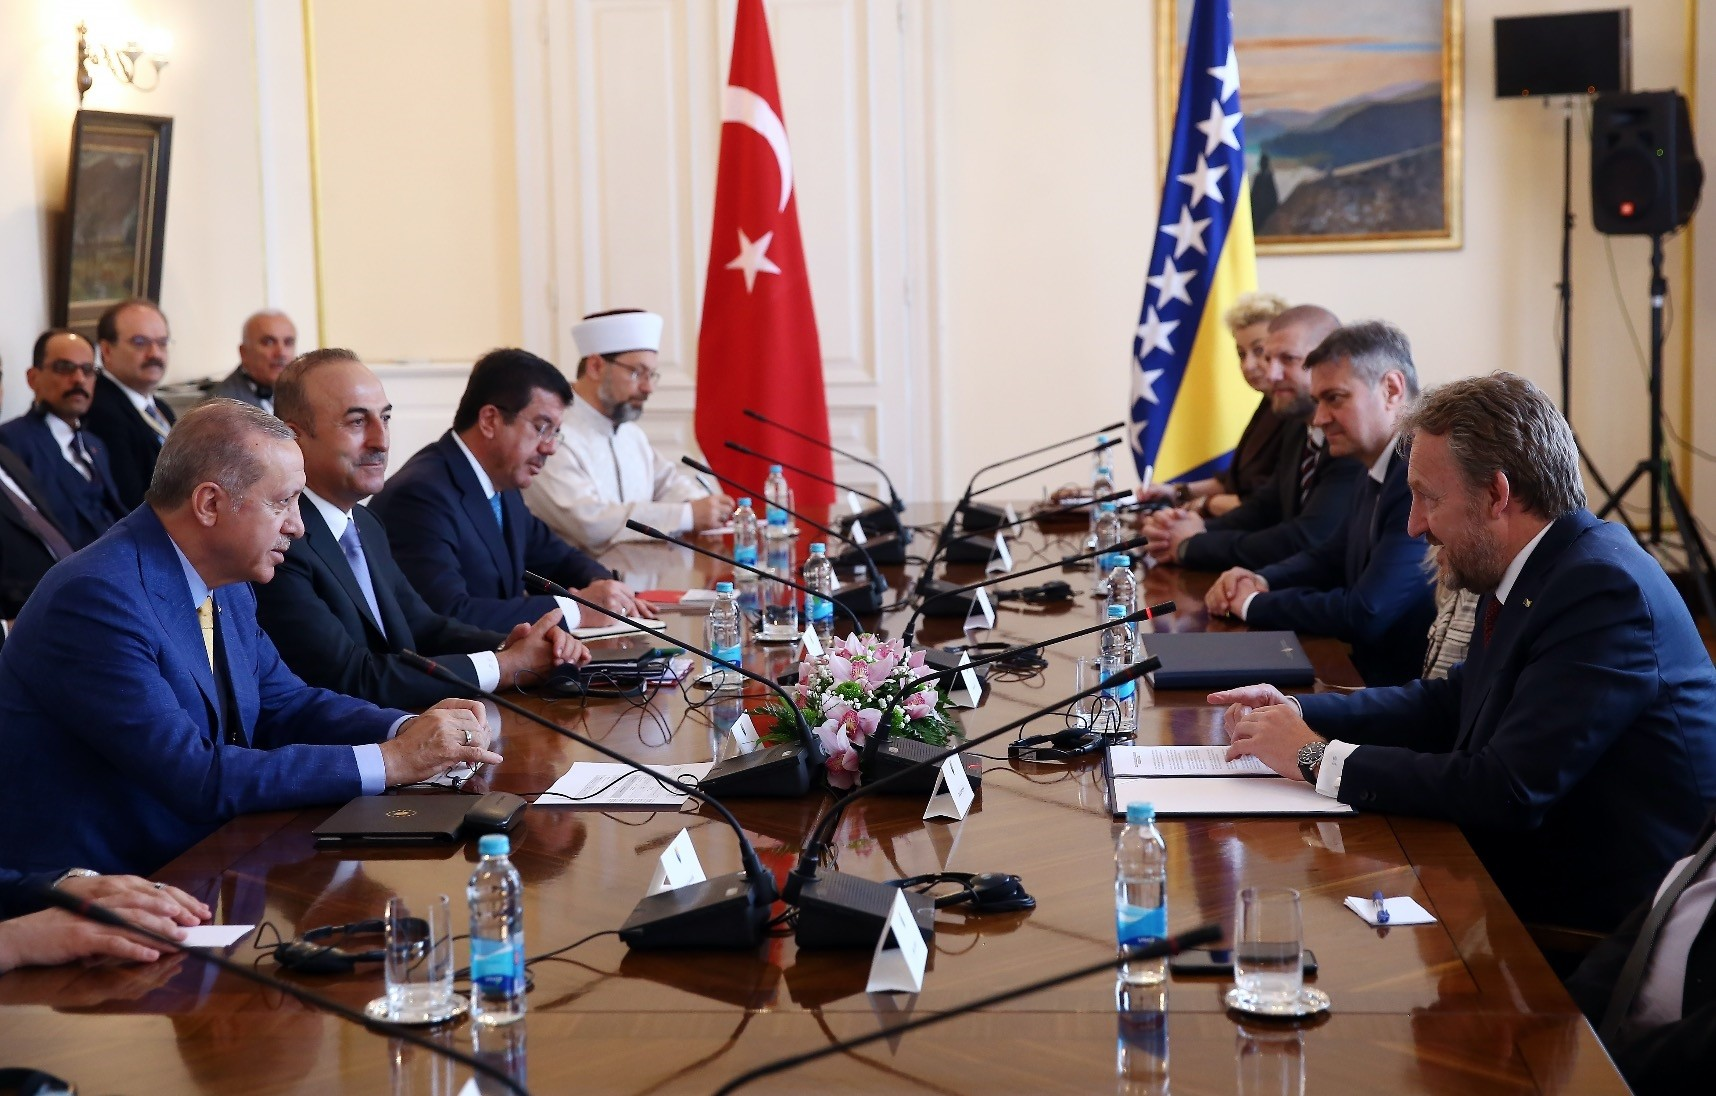 President Recep Tayyip Erdou011fan held a one-on-one meeting and inter-delegation talks with Bakir Izetbegovic (R), the Bosniak member of the tripartite Presidency of Bosnia-Herzegovina, during his visit to the country, May 20.